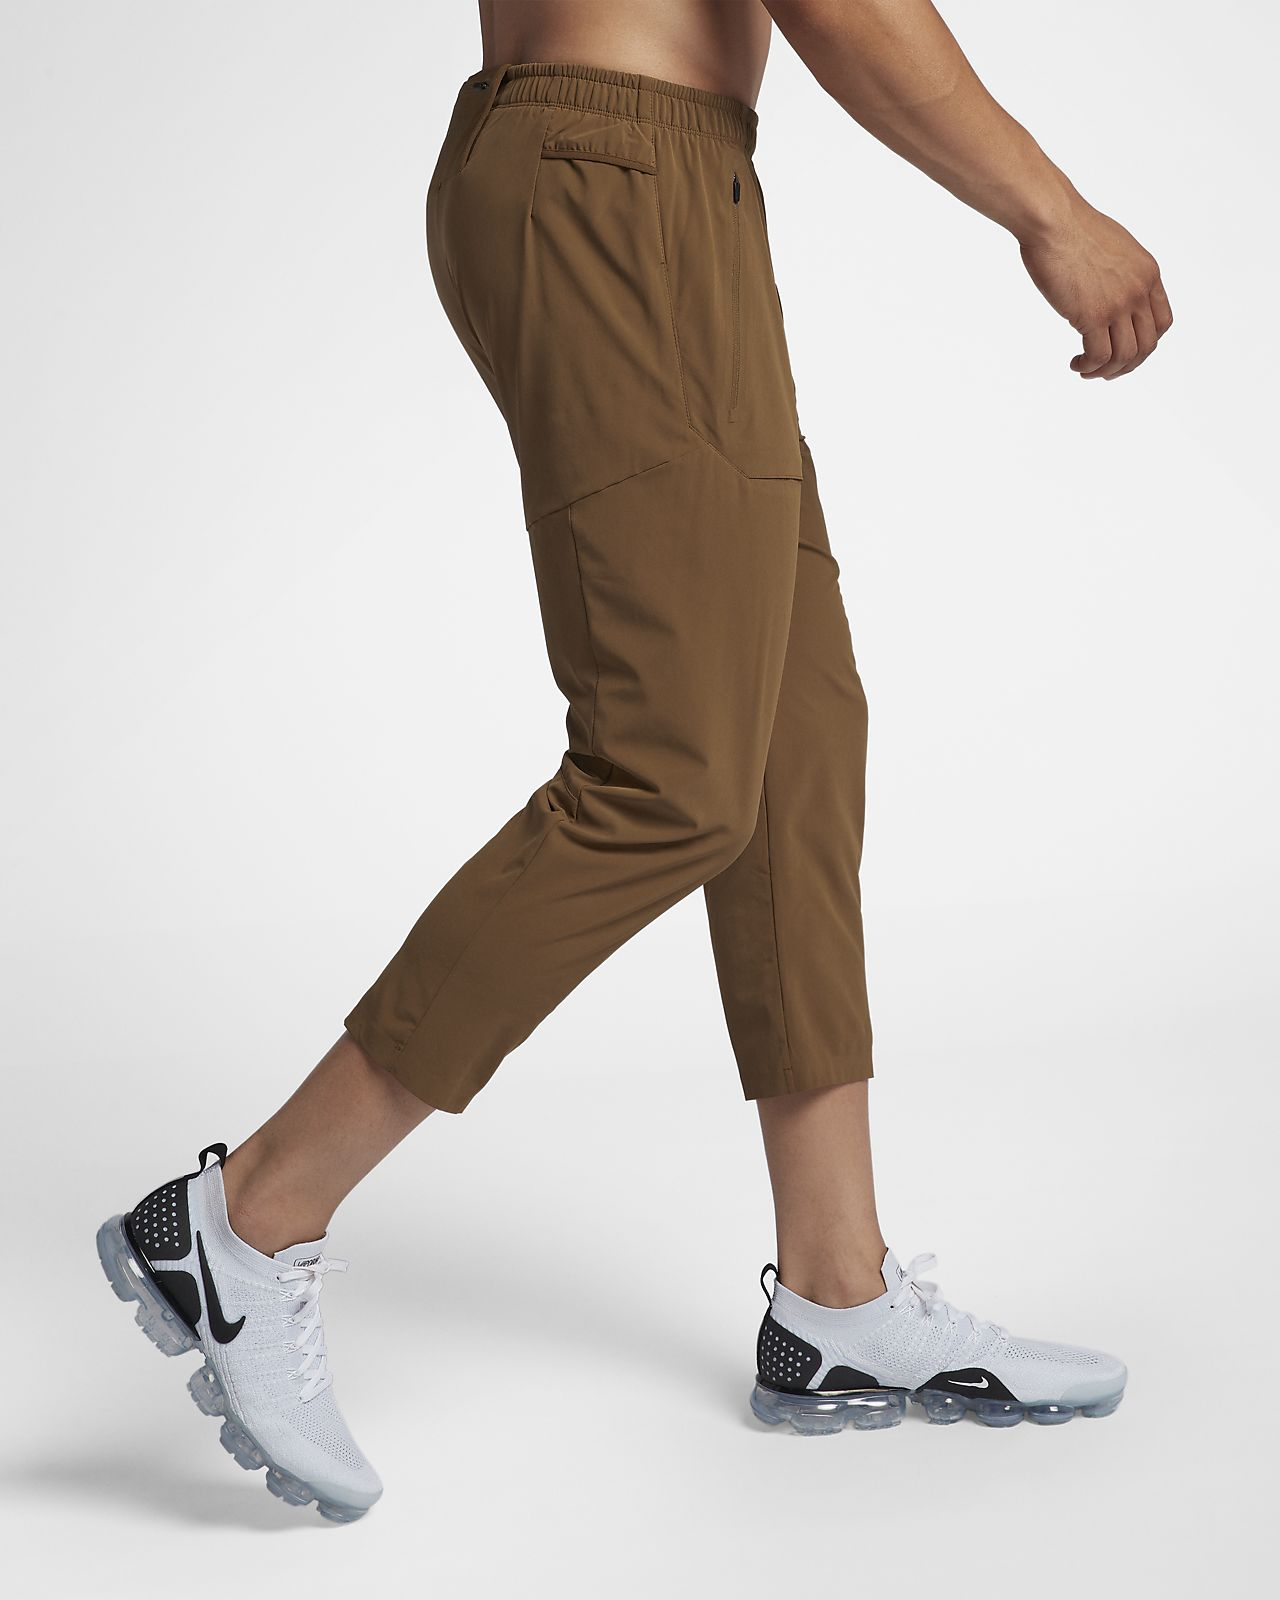 22c5357e91c4 Nike Run Division Men s Running Trousers. Nike.com IE